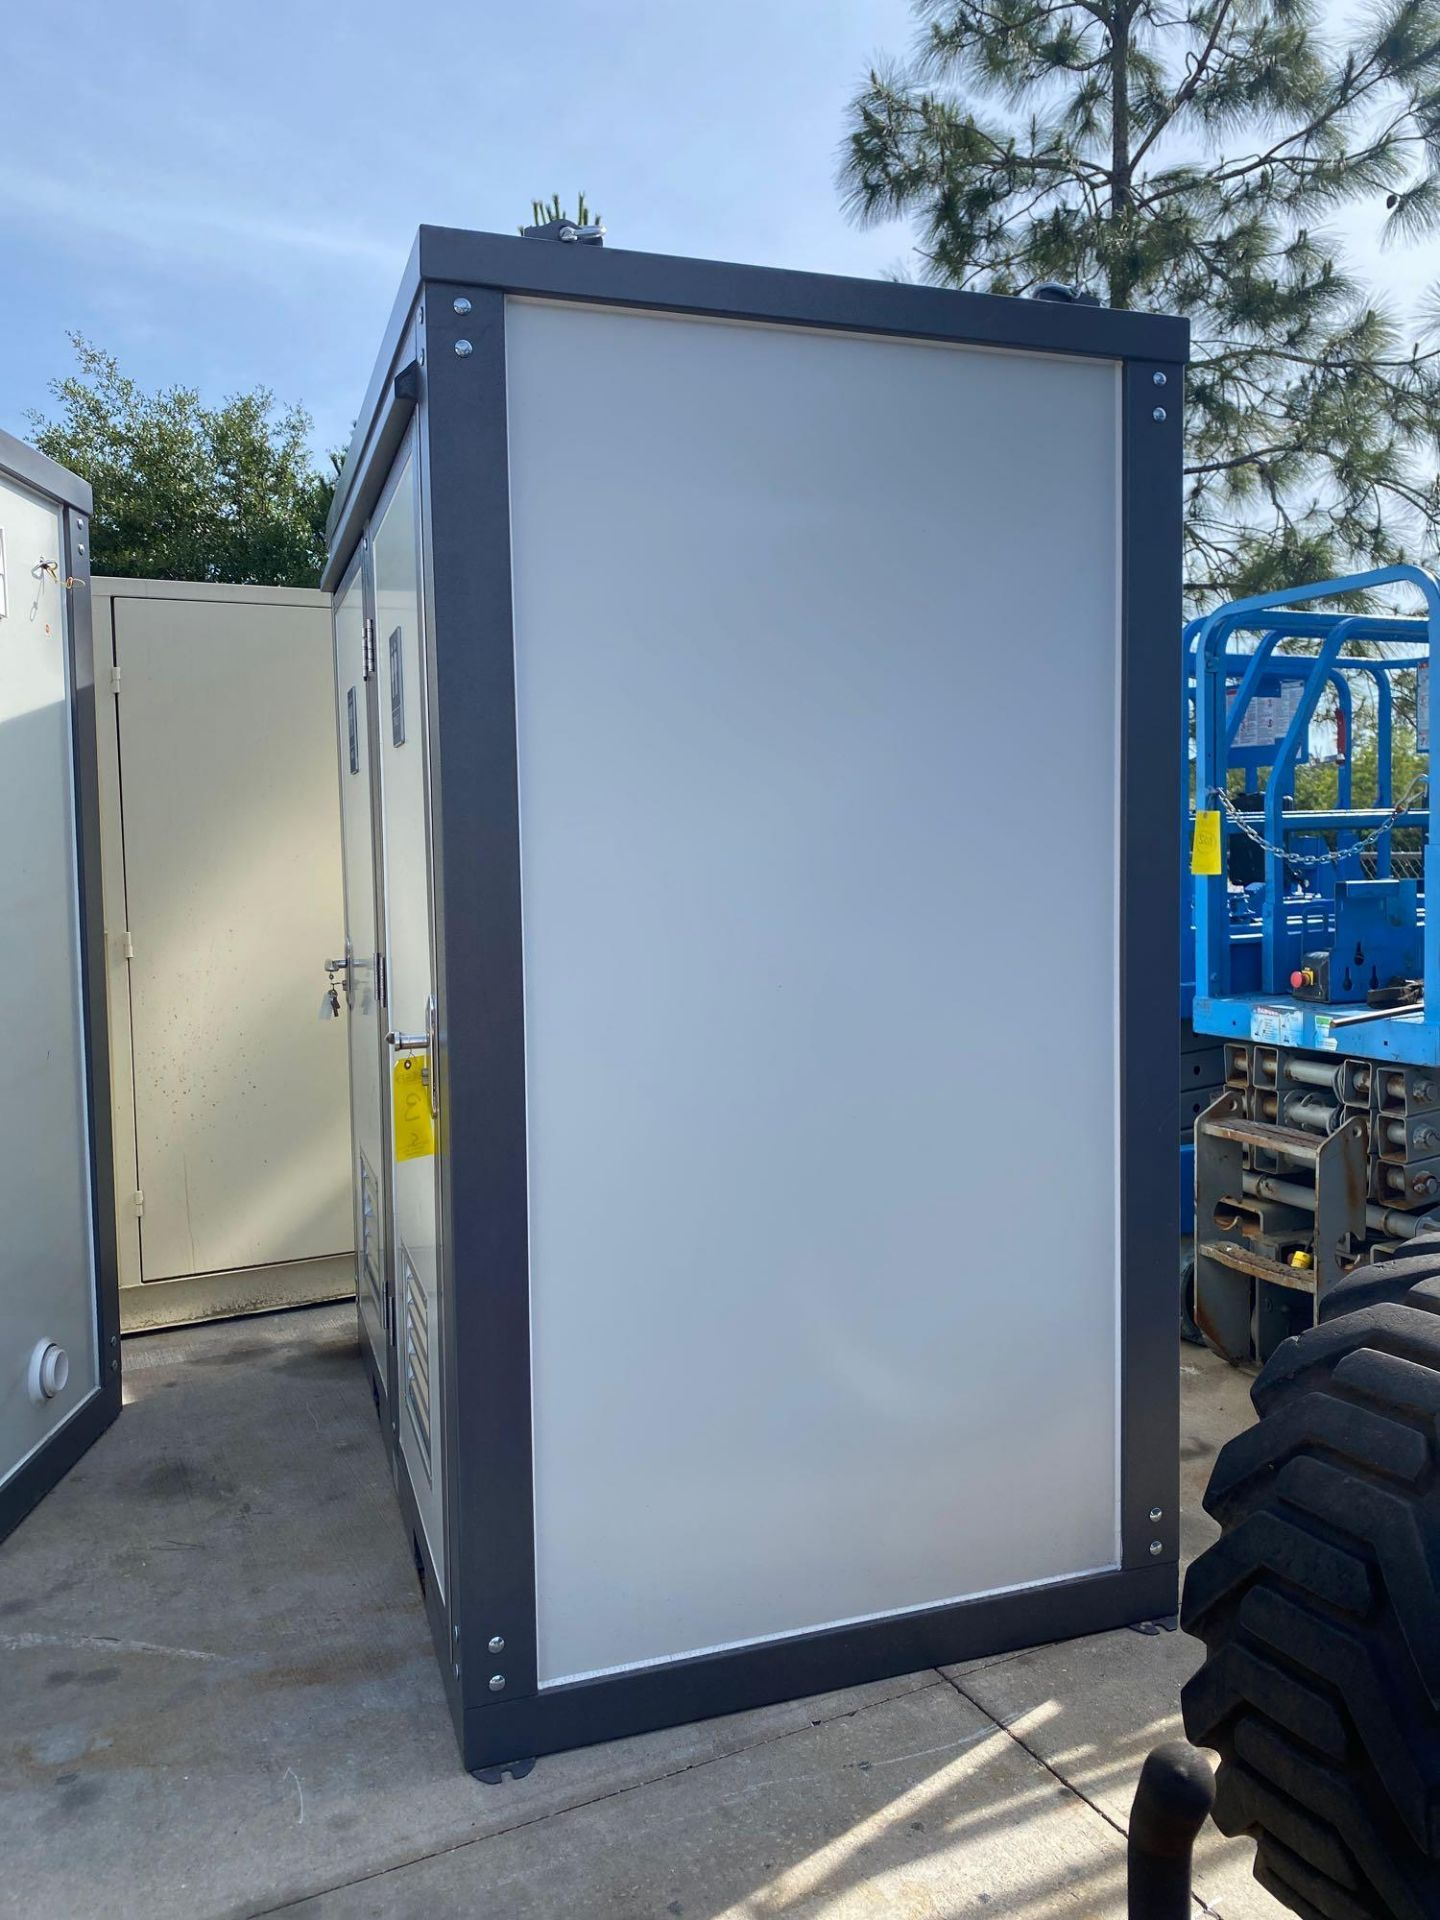 """Lot 3 - NEW/UNUSED PORTABLE BATHROOM UNIT, TWO STALLS, PLUMBING AND ELECTRIC HOOKUP, 81"""" WIDE 90"""" TALL 51"""" D"""